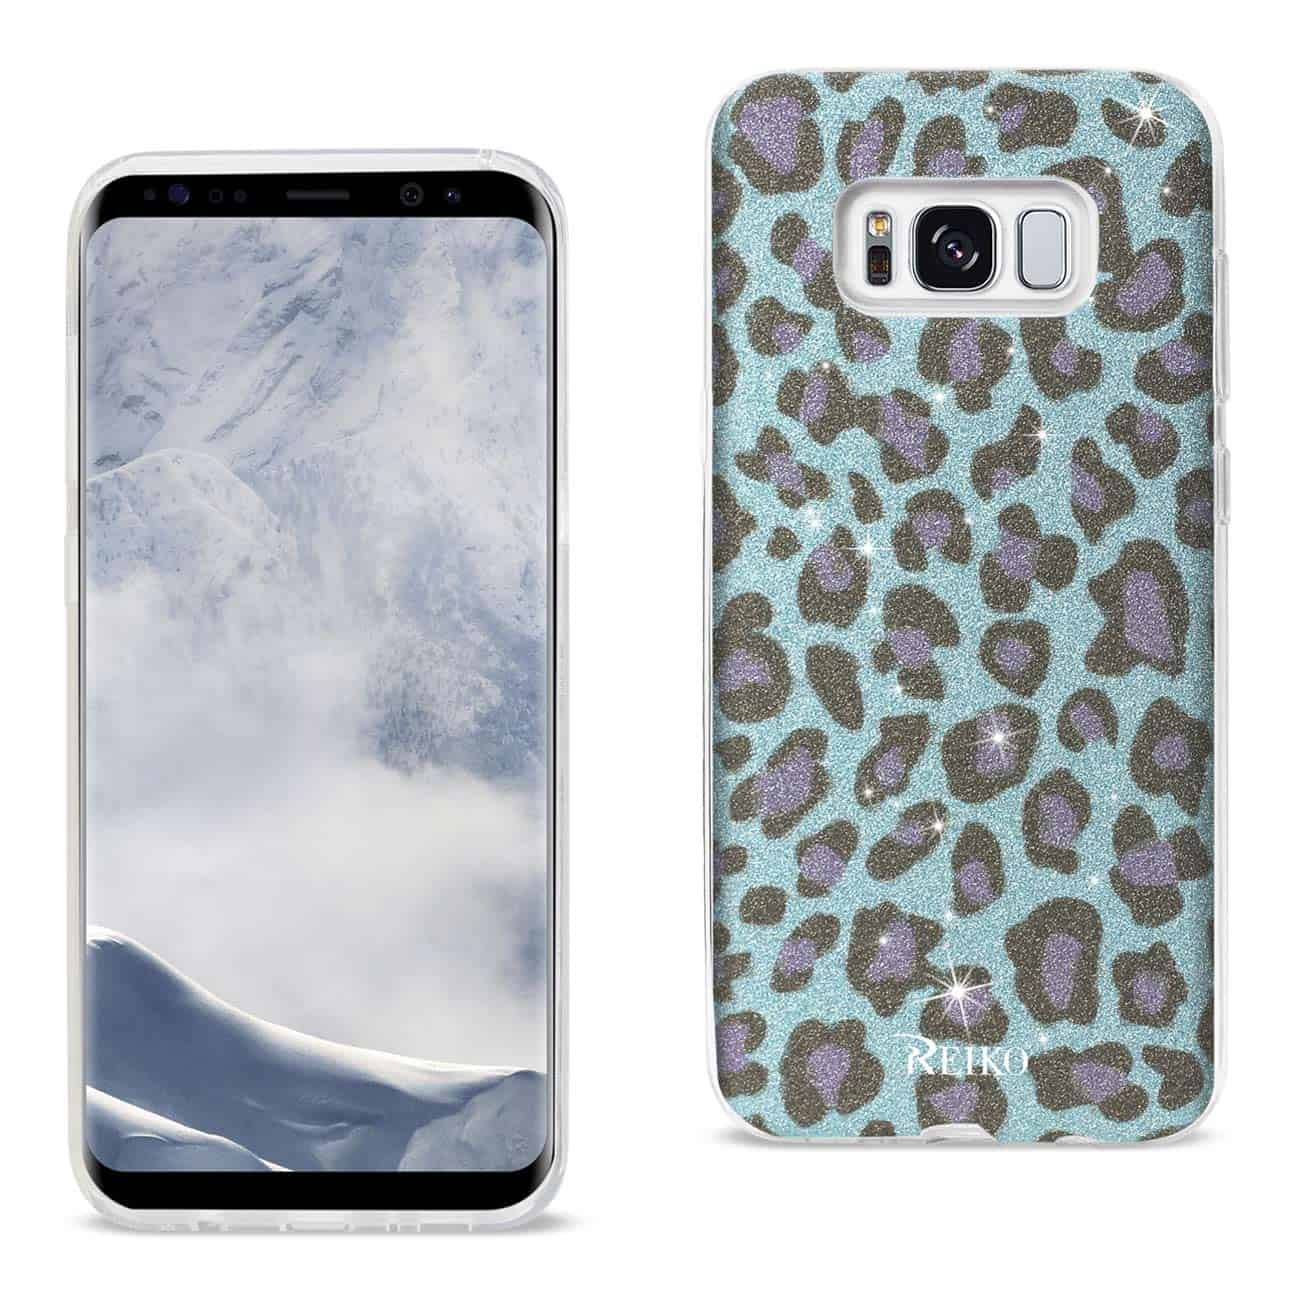 SAMSUNG GALAXY S8 EDGE/ S8 PLUS SHINE GLITTER SHIMMER LEOPARD HYBRID CASE IN BLUE